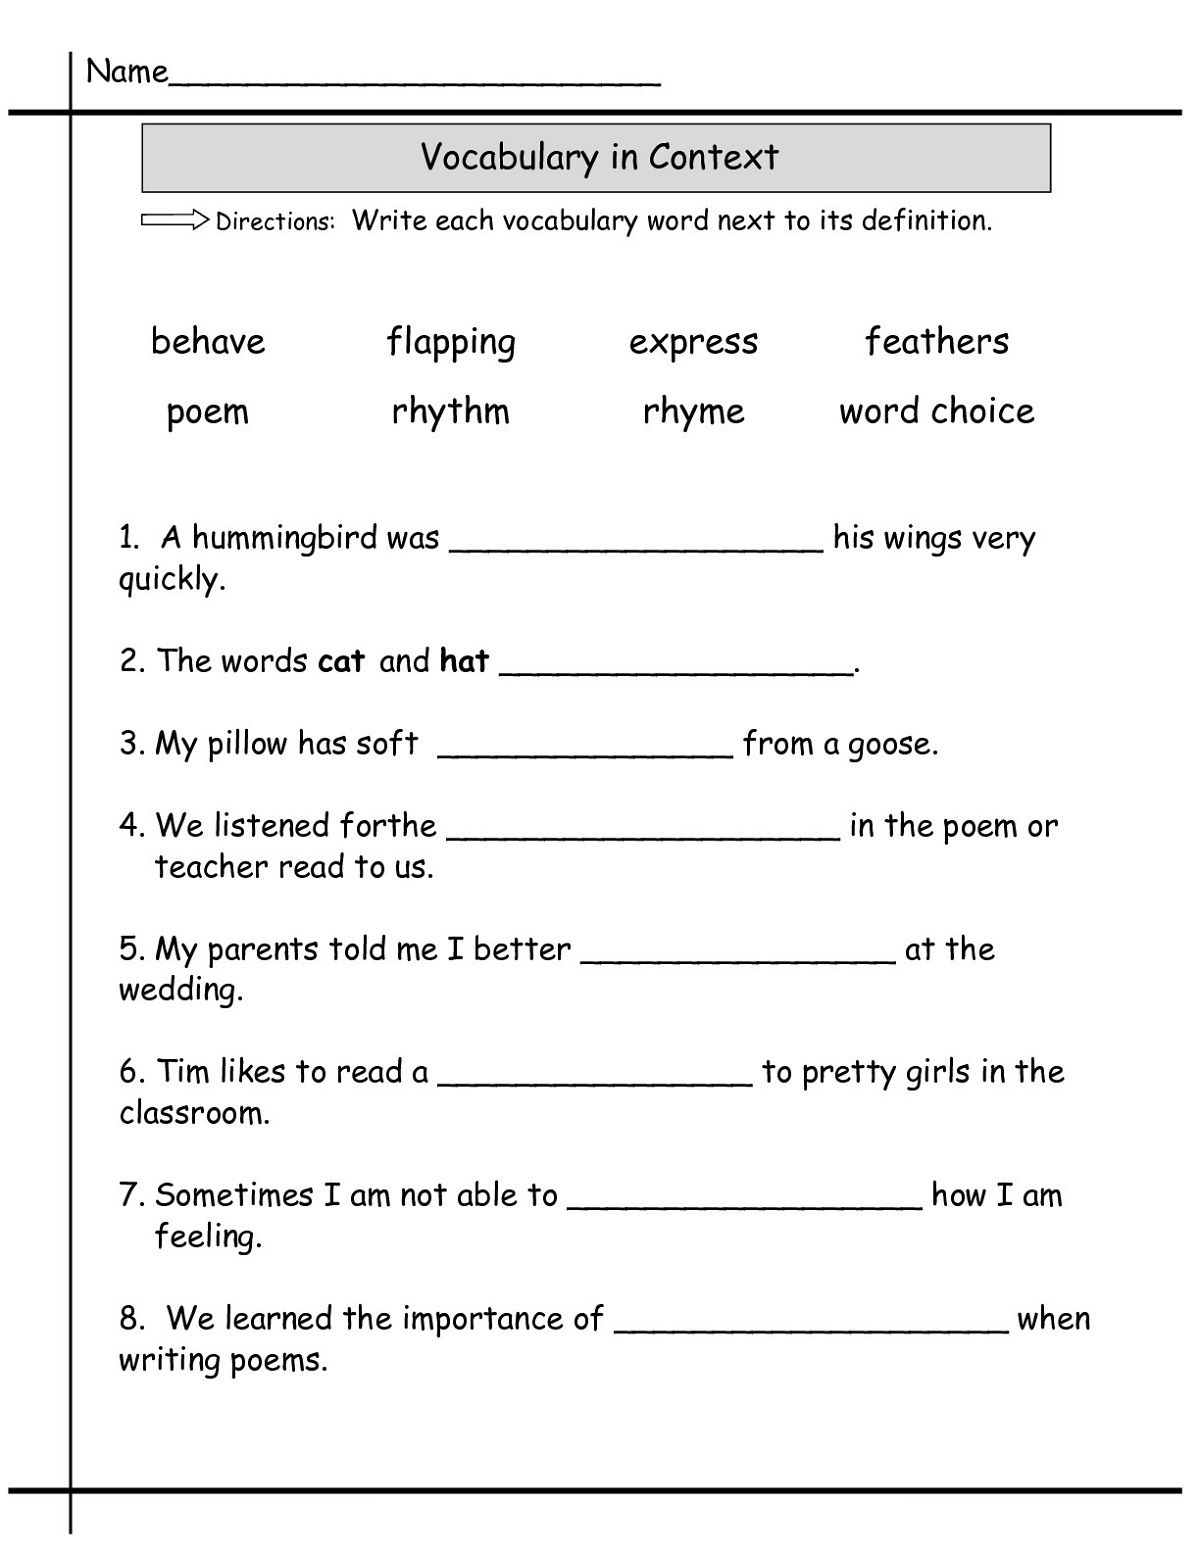 medium resolution of https://dubaikhalifas.com/printable-free-grammar-worksheets-second-grade-2-punctuation-negative-contractions-english/